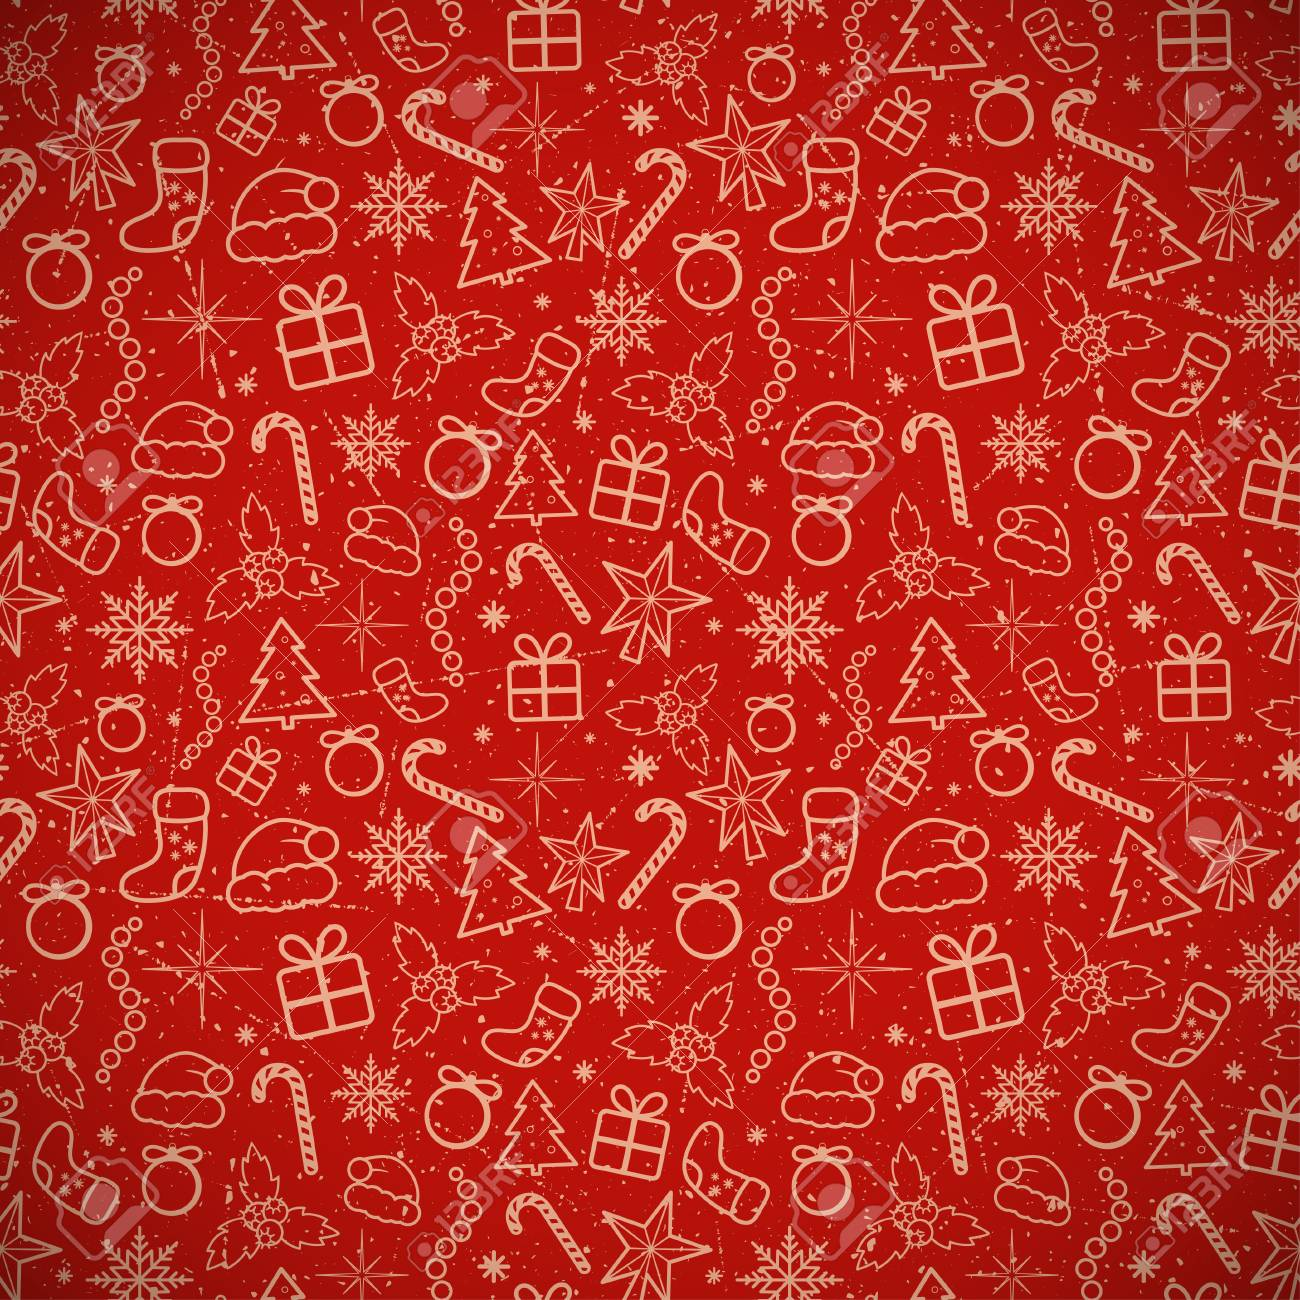 Red Christmas Background.Red Christmas Traditional Background Vector Illustration